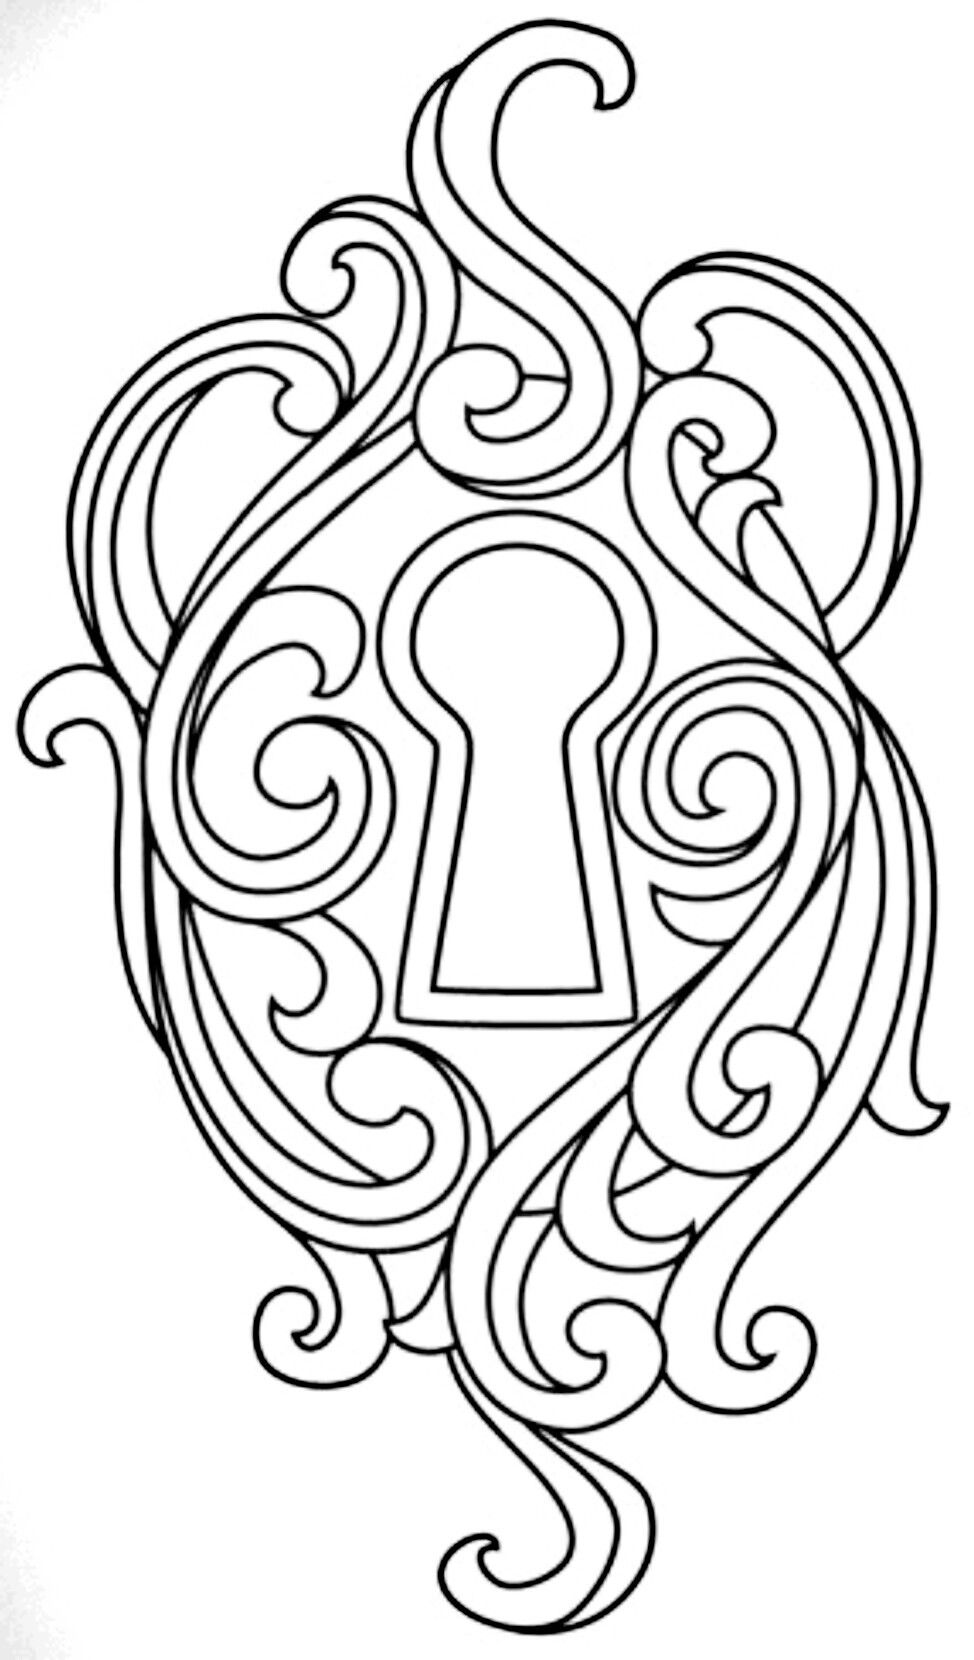 Key Lock Coloring Pages Embroidery Designs Embroidery